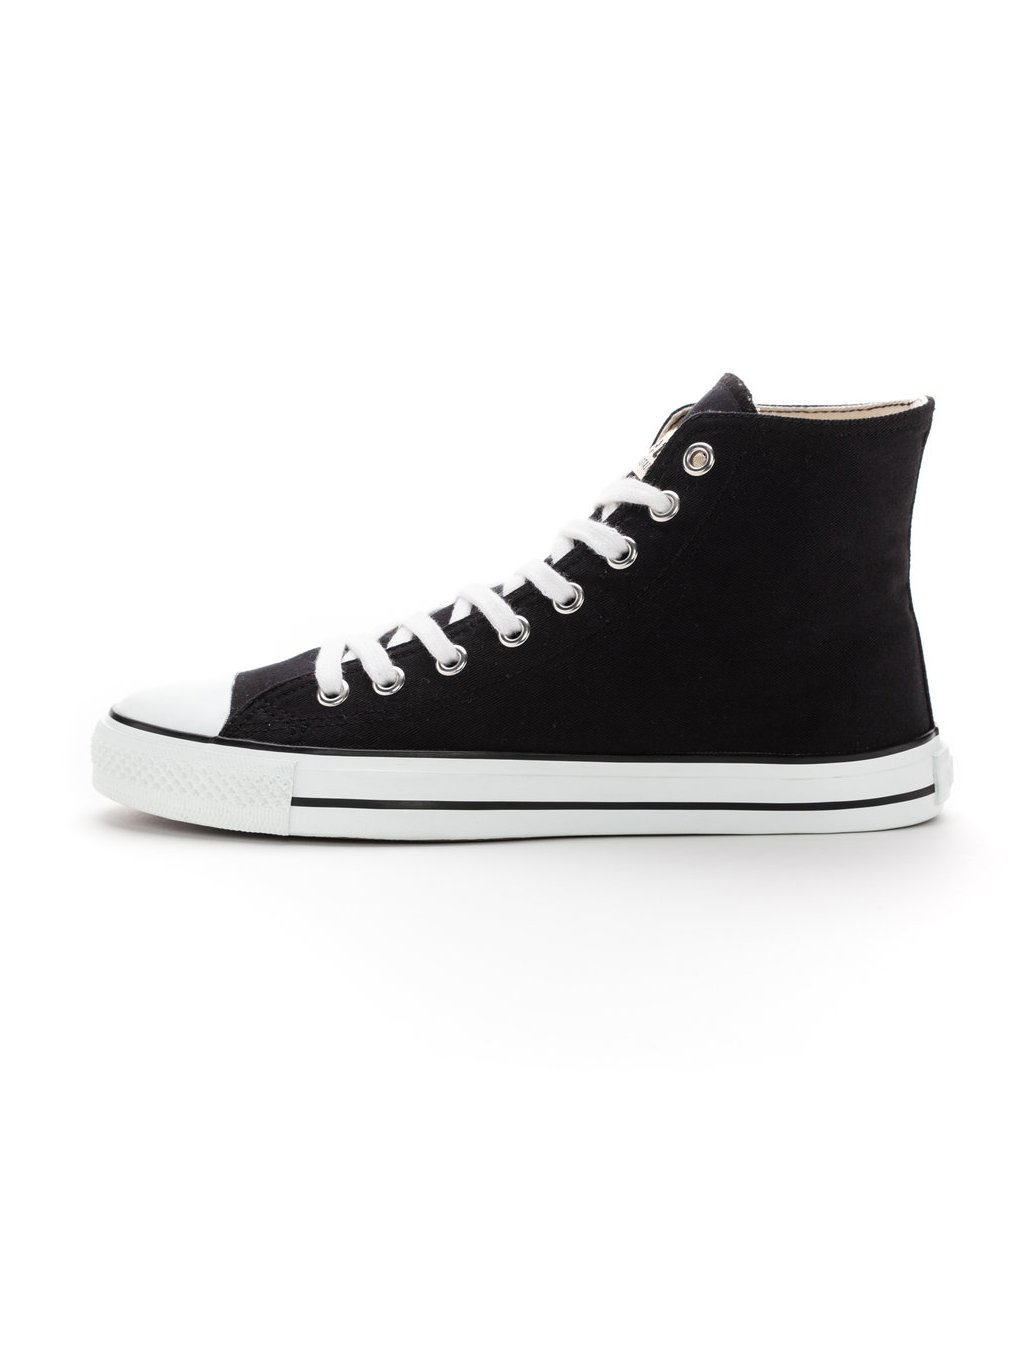 ethletic fair trainer white cap hi cut jet black j